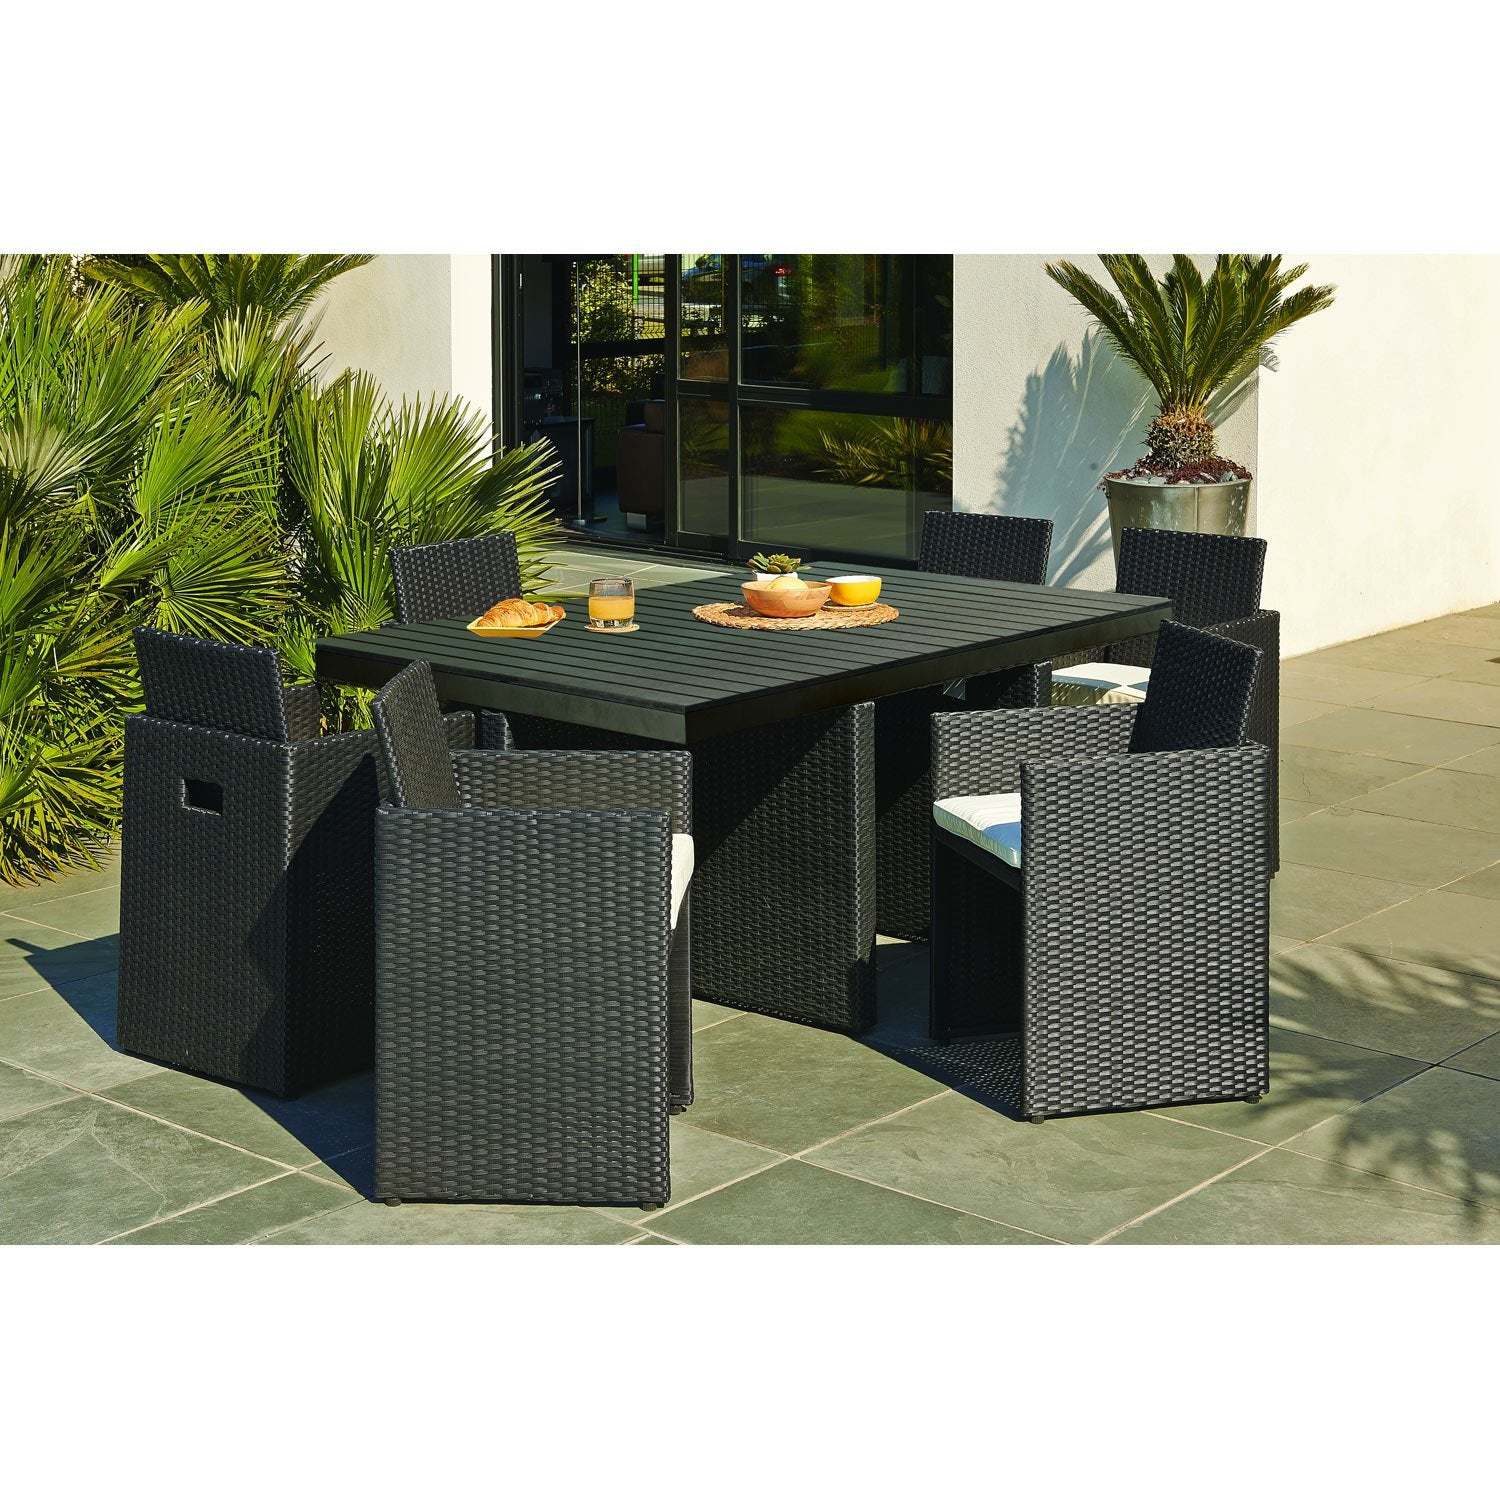 Salon de jardin encastrable r sine tress e noir 1 table - Salon de jardin en resine encastrable ...